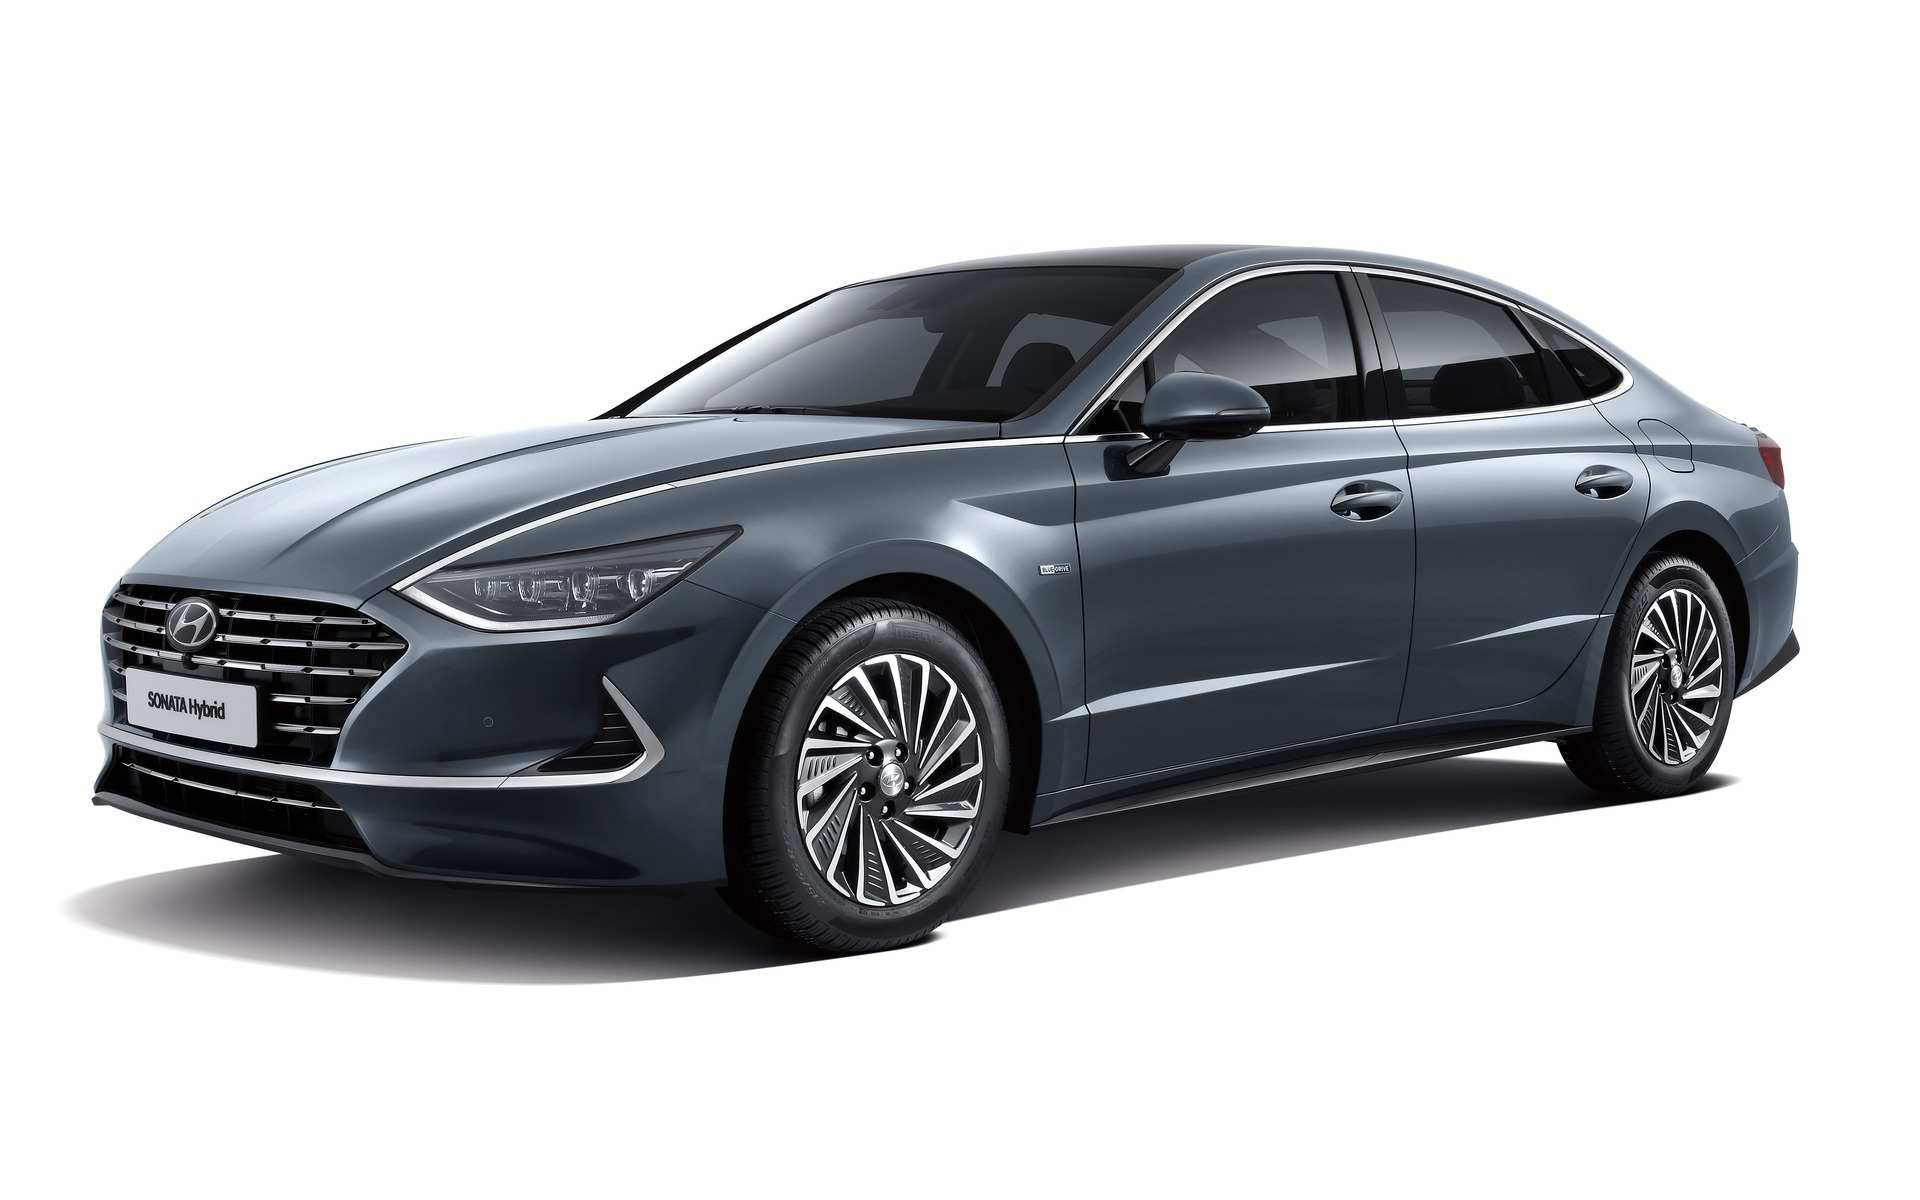 61 Concept of 2020 Hyundai Sonata Redesign Pricing by 2020 Hyundai Sonata Redesign